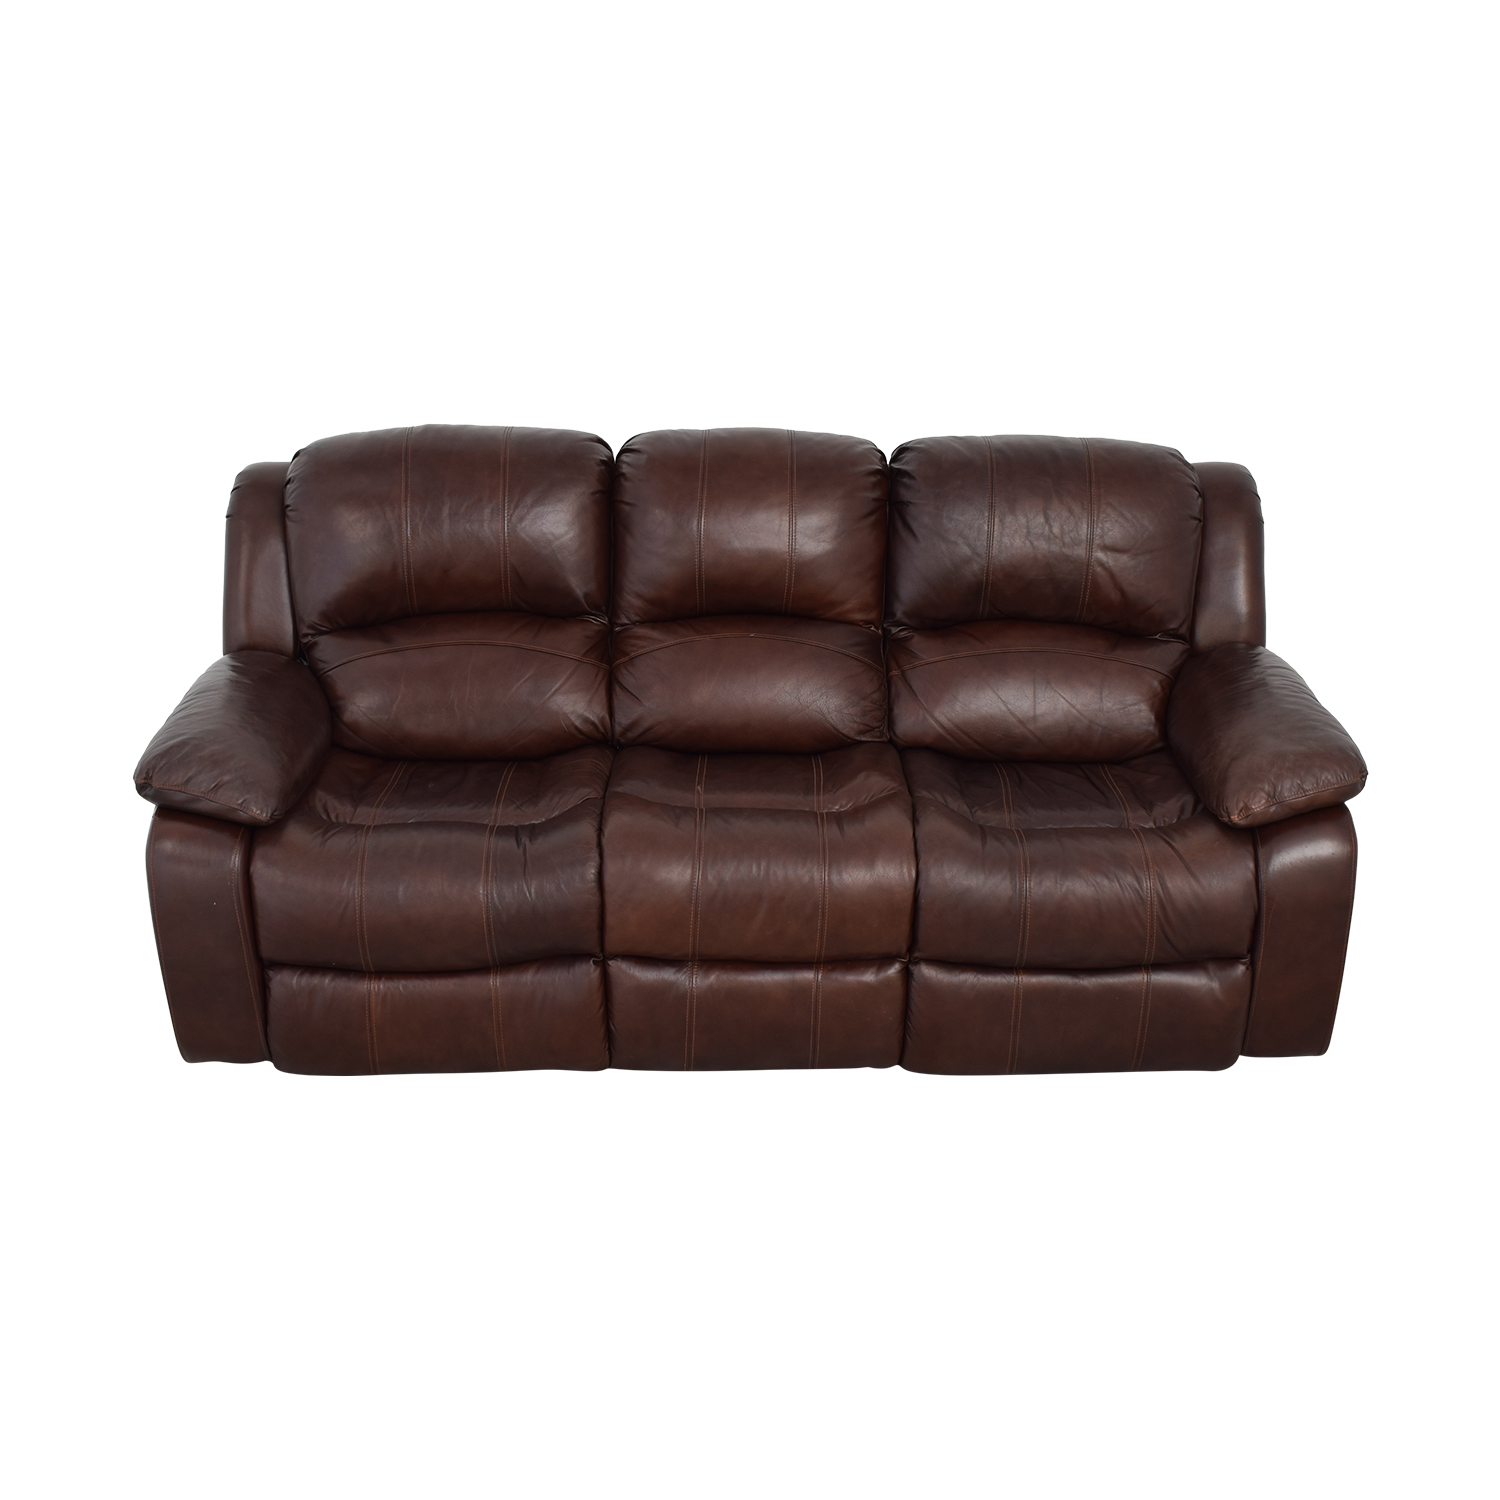 Raymour & Flanigan Raymour & Flanigan Brown Leather Reclining Sofa dimensions